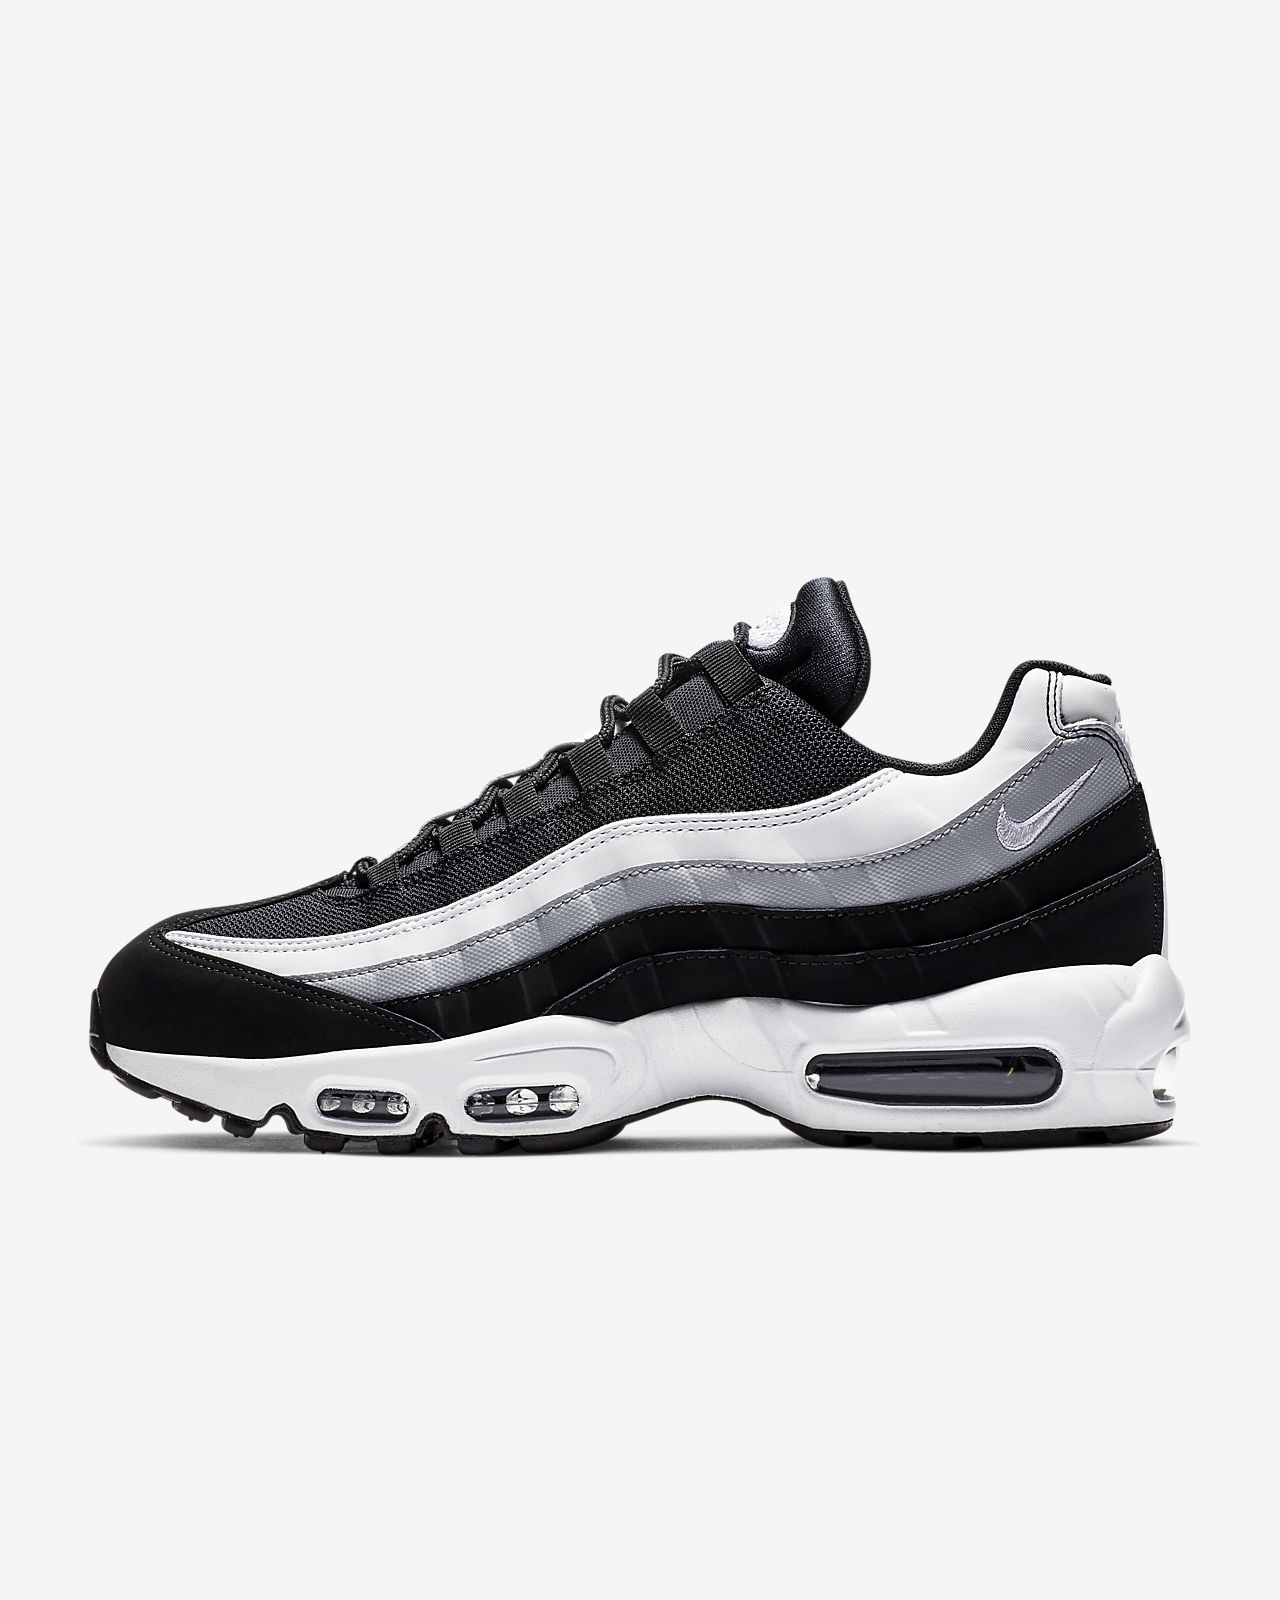 official photos 8d824 cd0da Nike Air Max 95 Essential